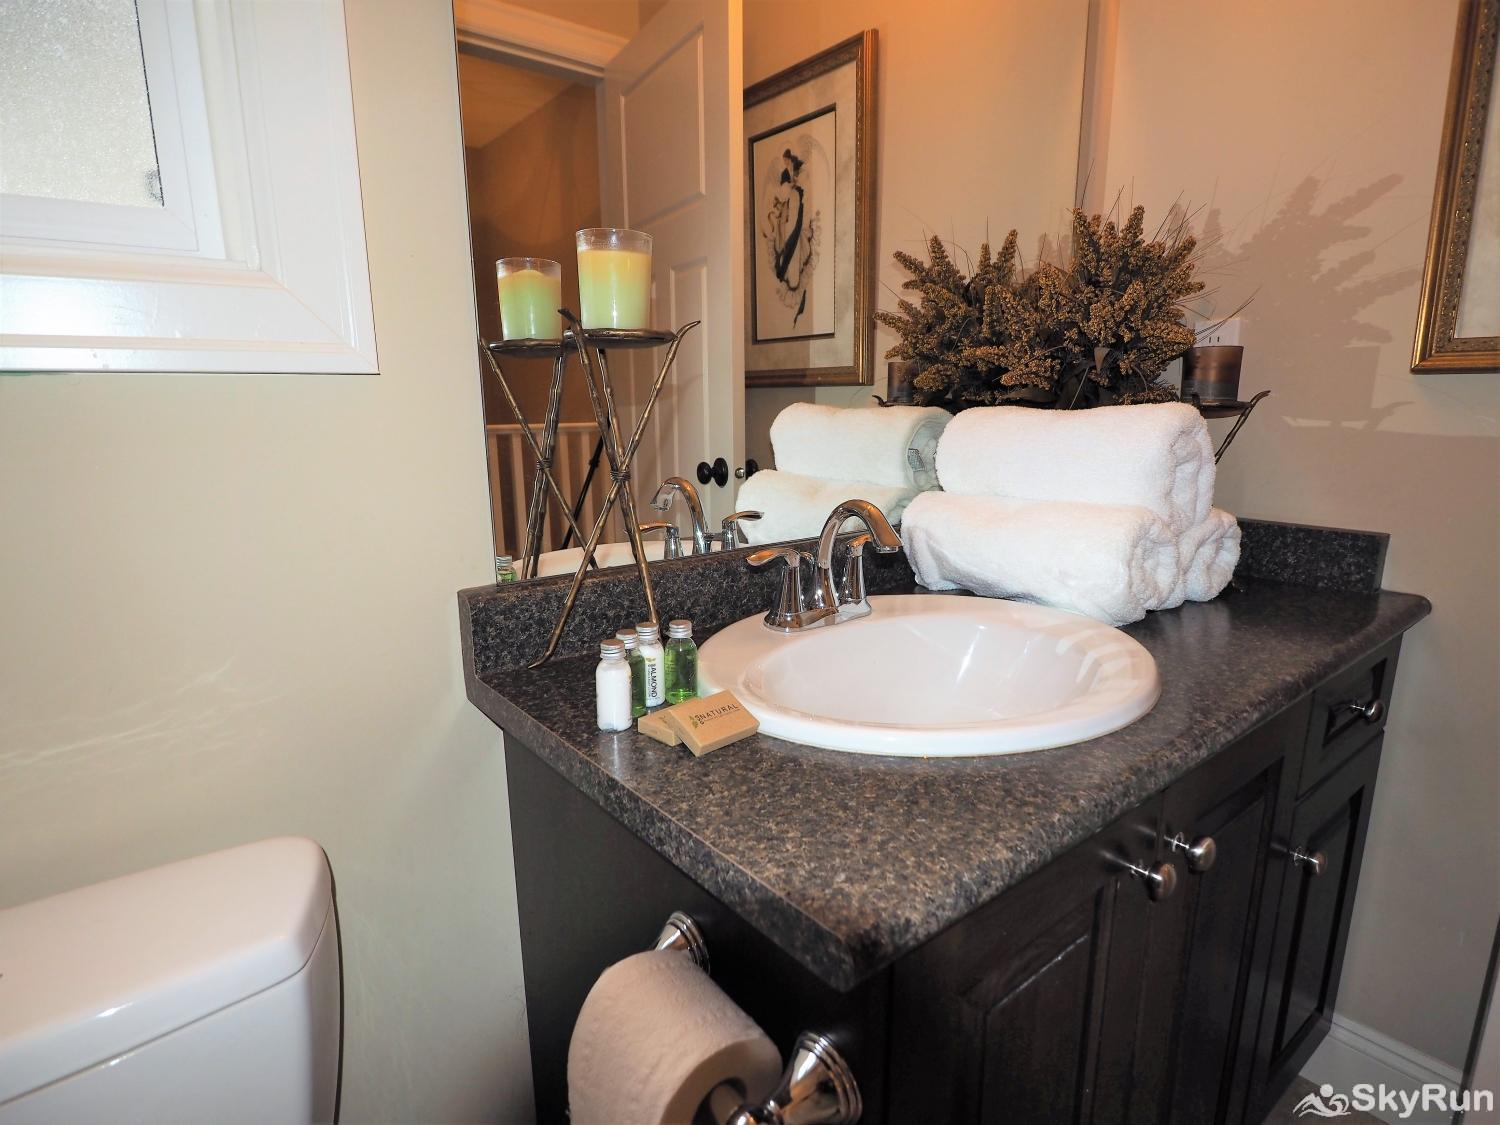 Old Summerland 4 bedroom townhouse Large guest bathroom with tub/shower combo